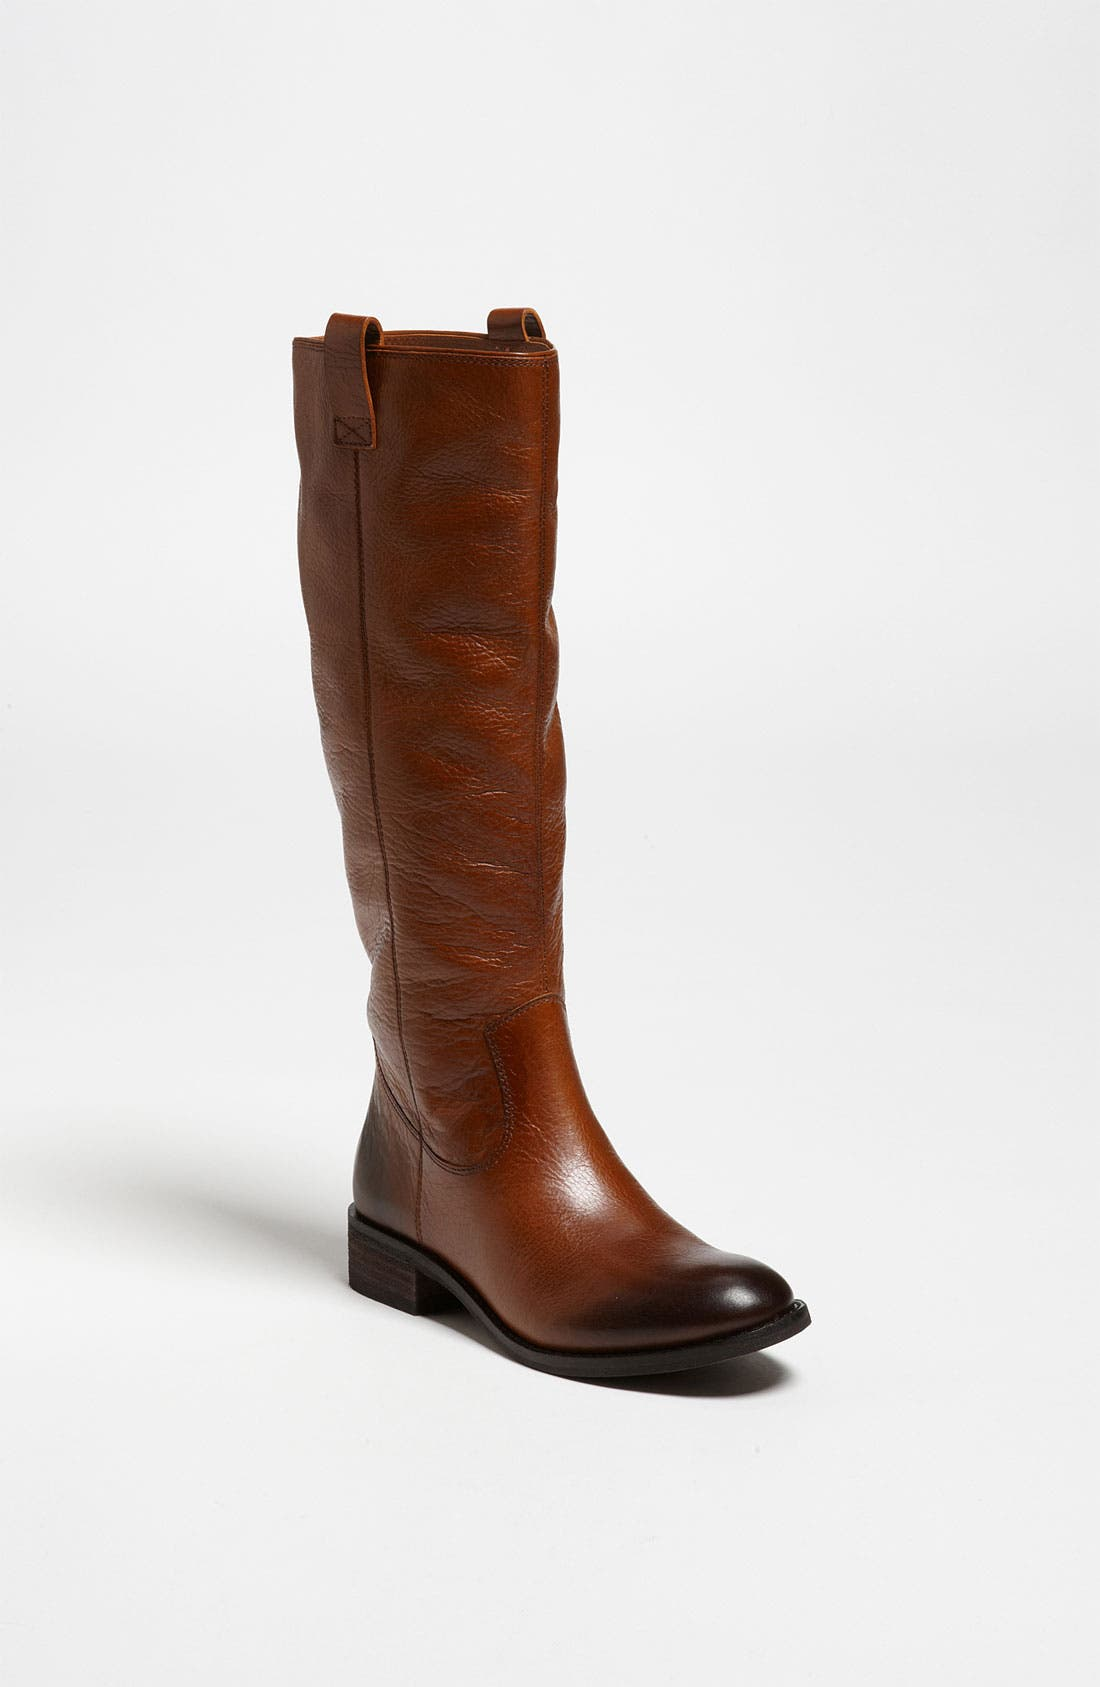 Main Image - Jessica Simpson 'Esteem' Boot (Wide Calf)